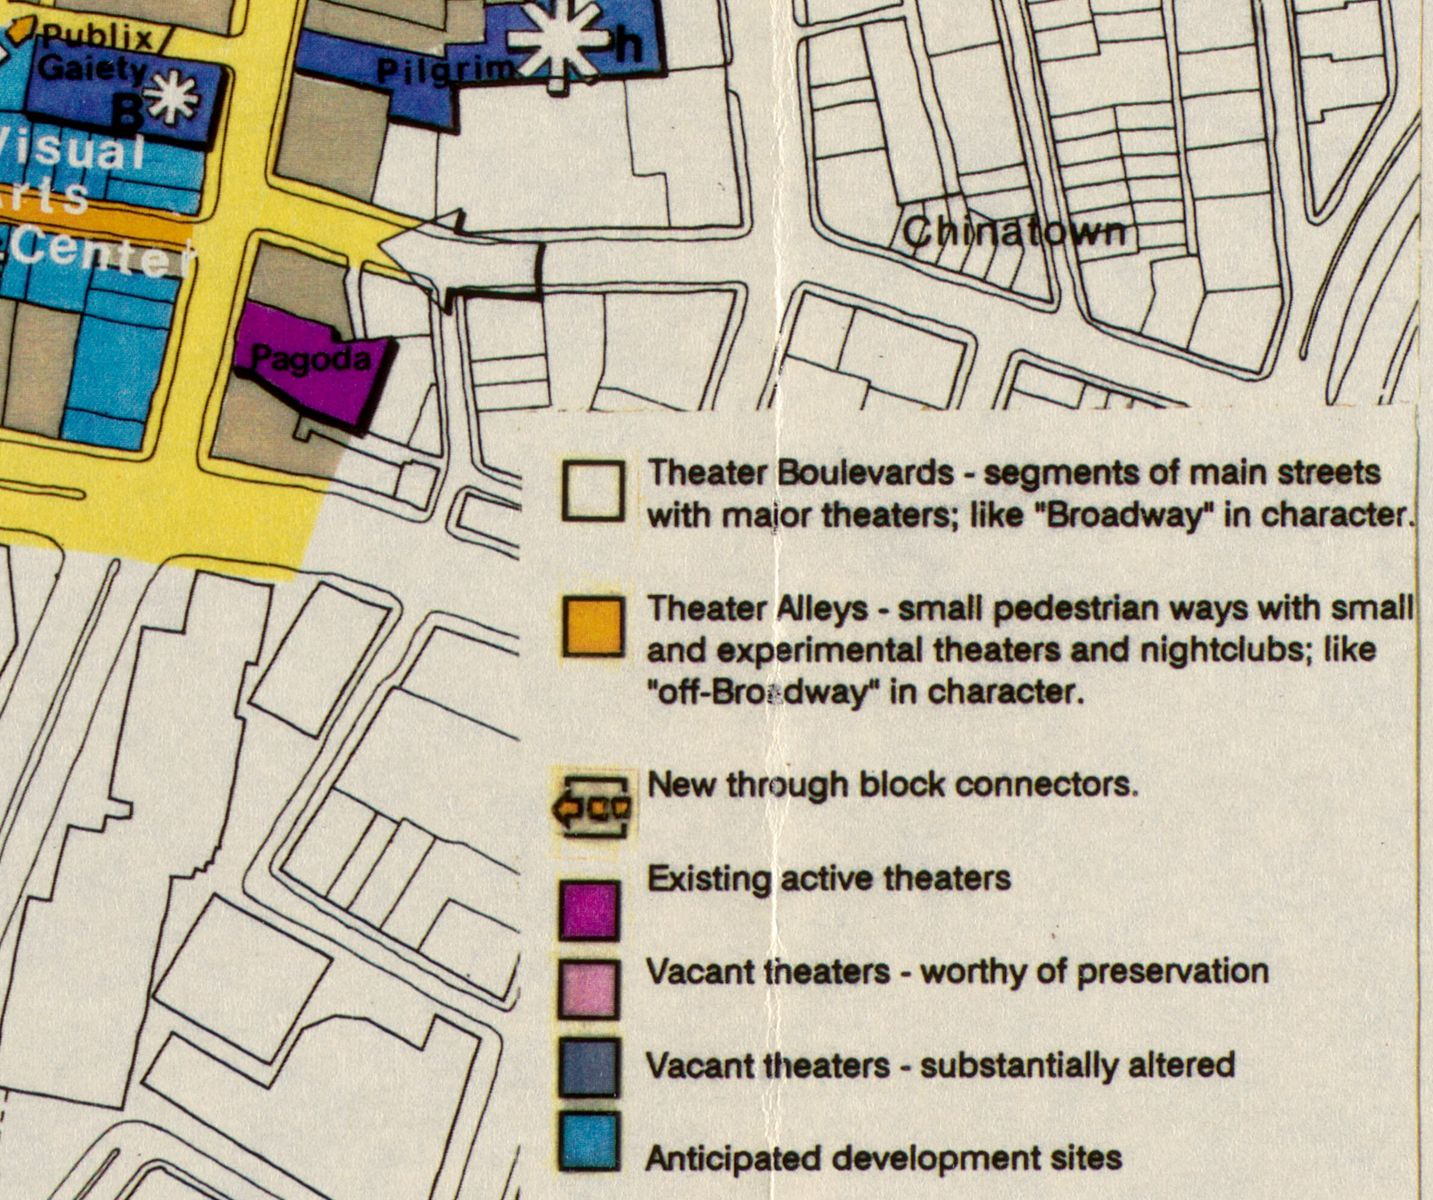 The Publix/Gaiety theater appears in the upper left of this excerpt